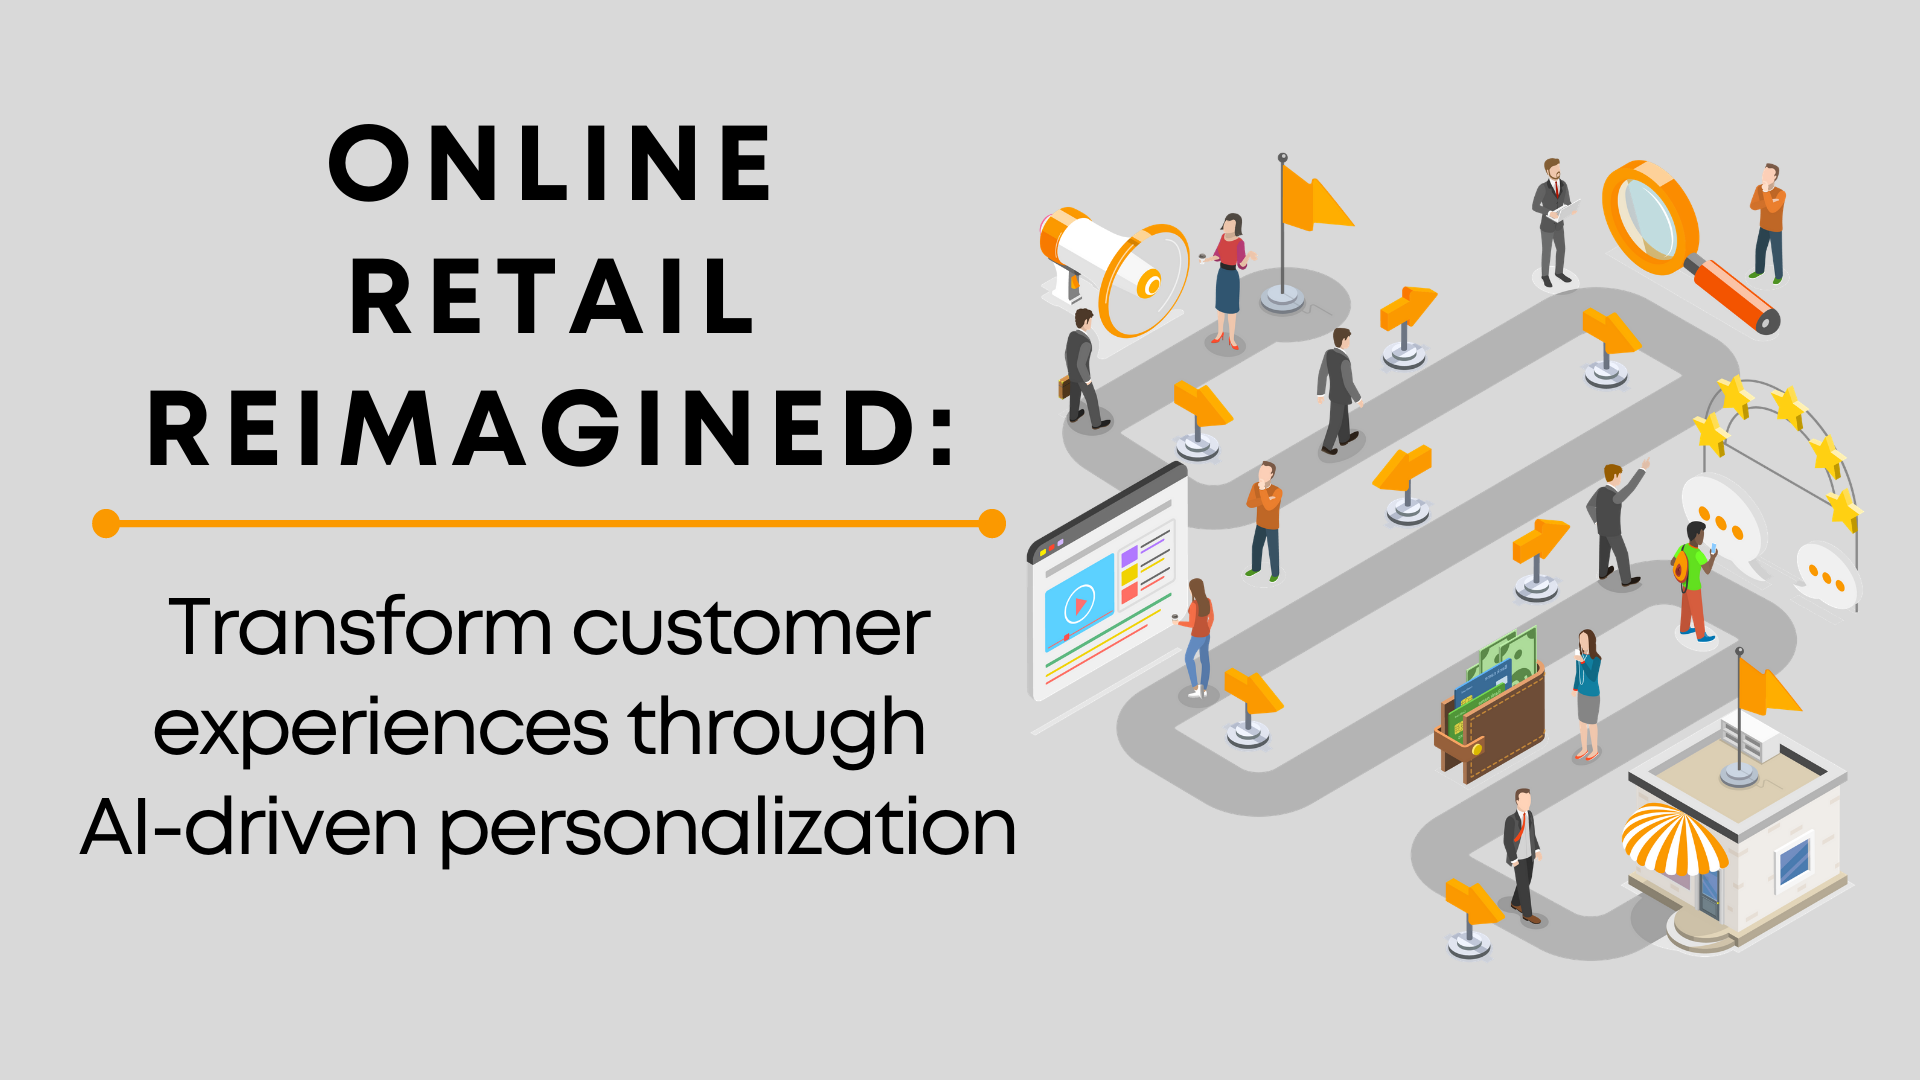 Online retail website personalization